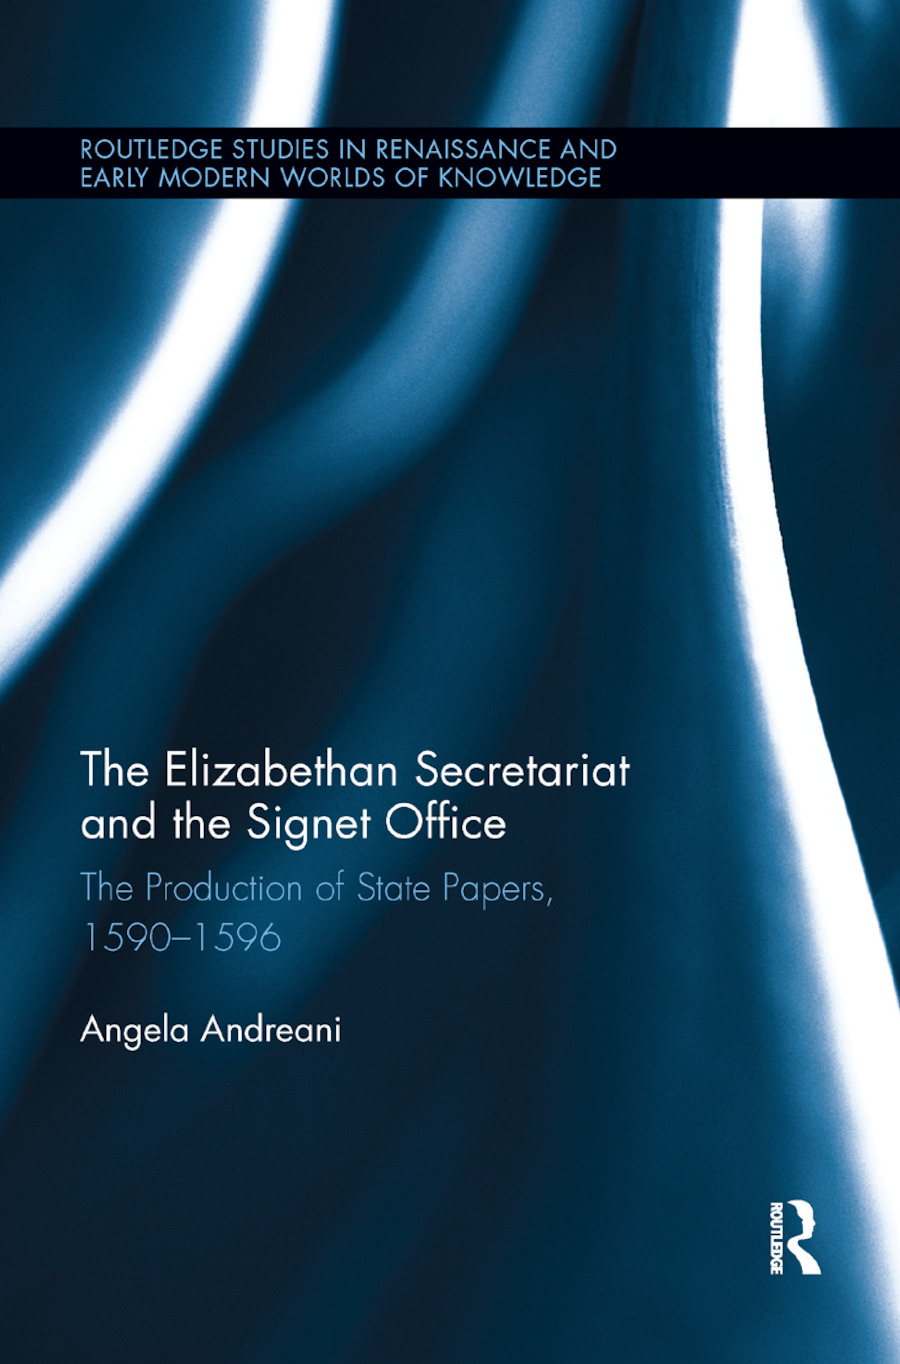 The Elizabethan Secretariat and the Signet Office: The Production of State Papers, 1590-1596 book cover